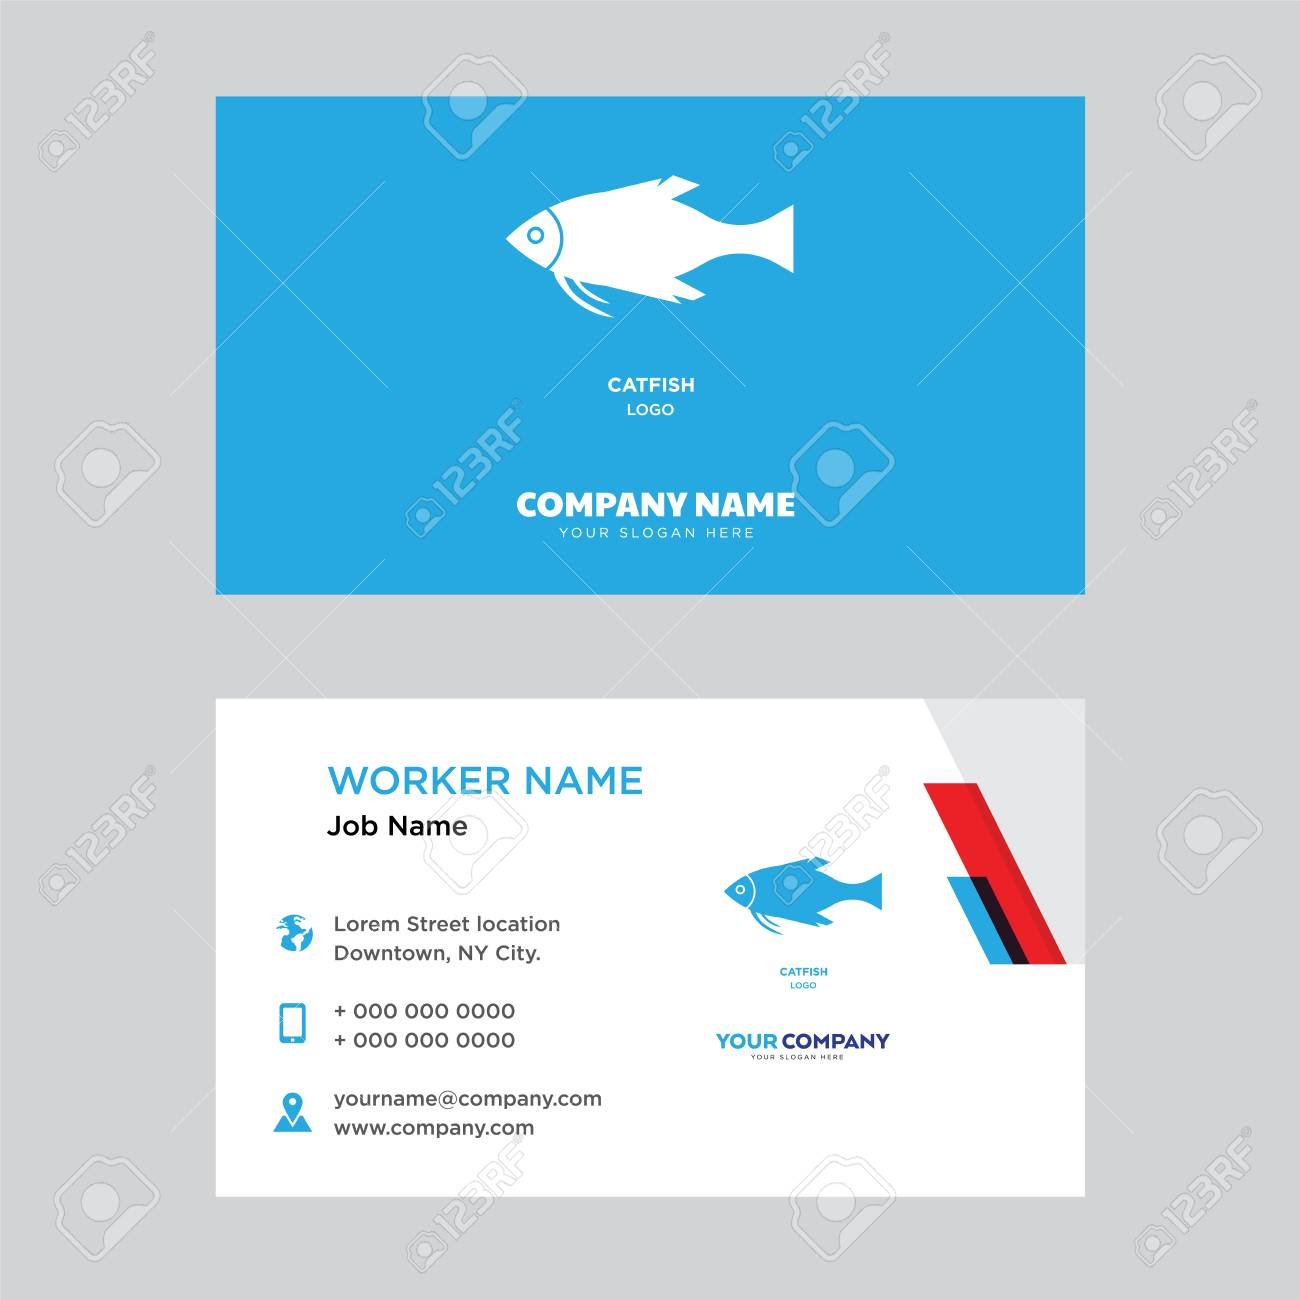 Catfish Business Card Design Template, Visiting For Your Company ...